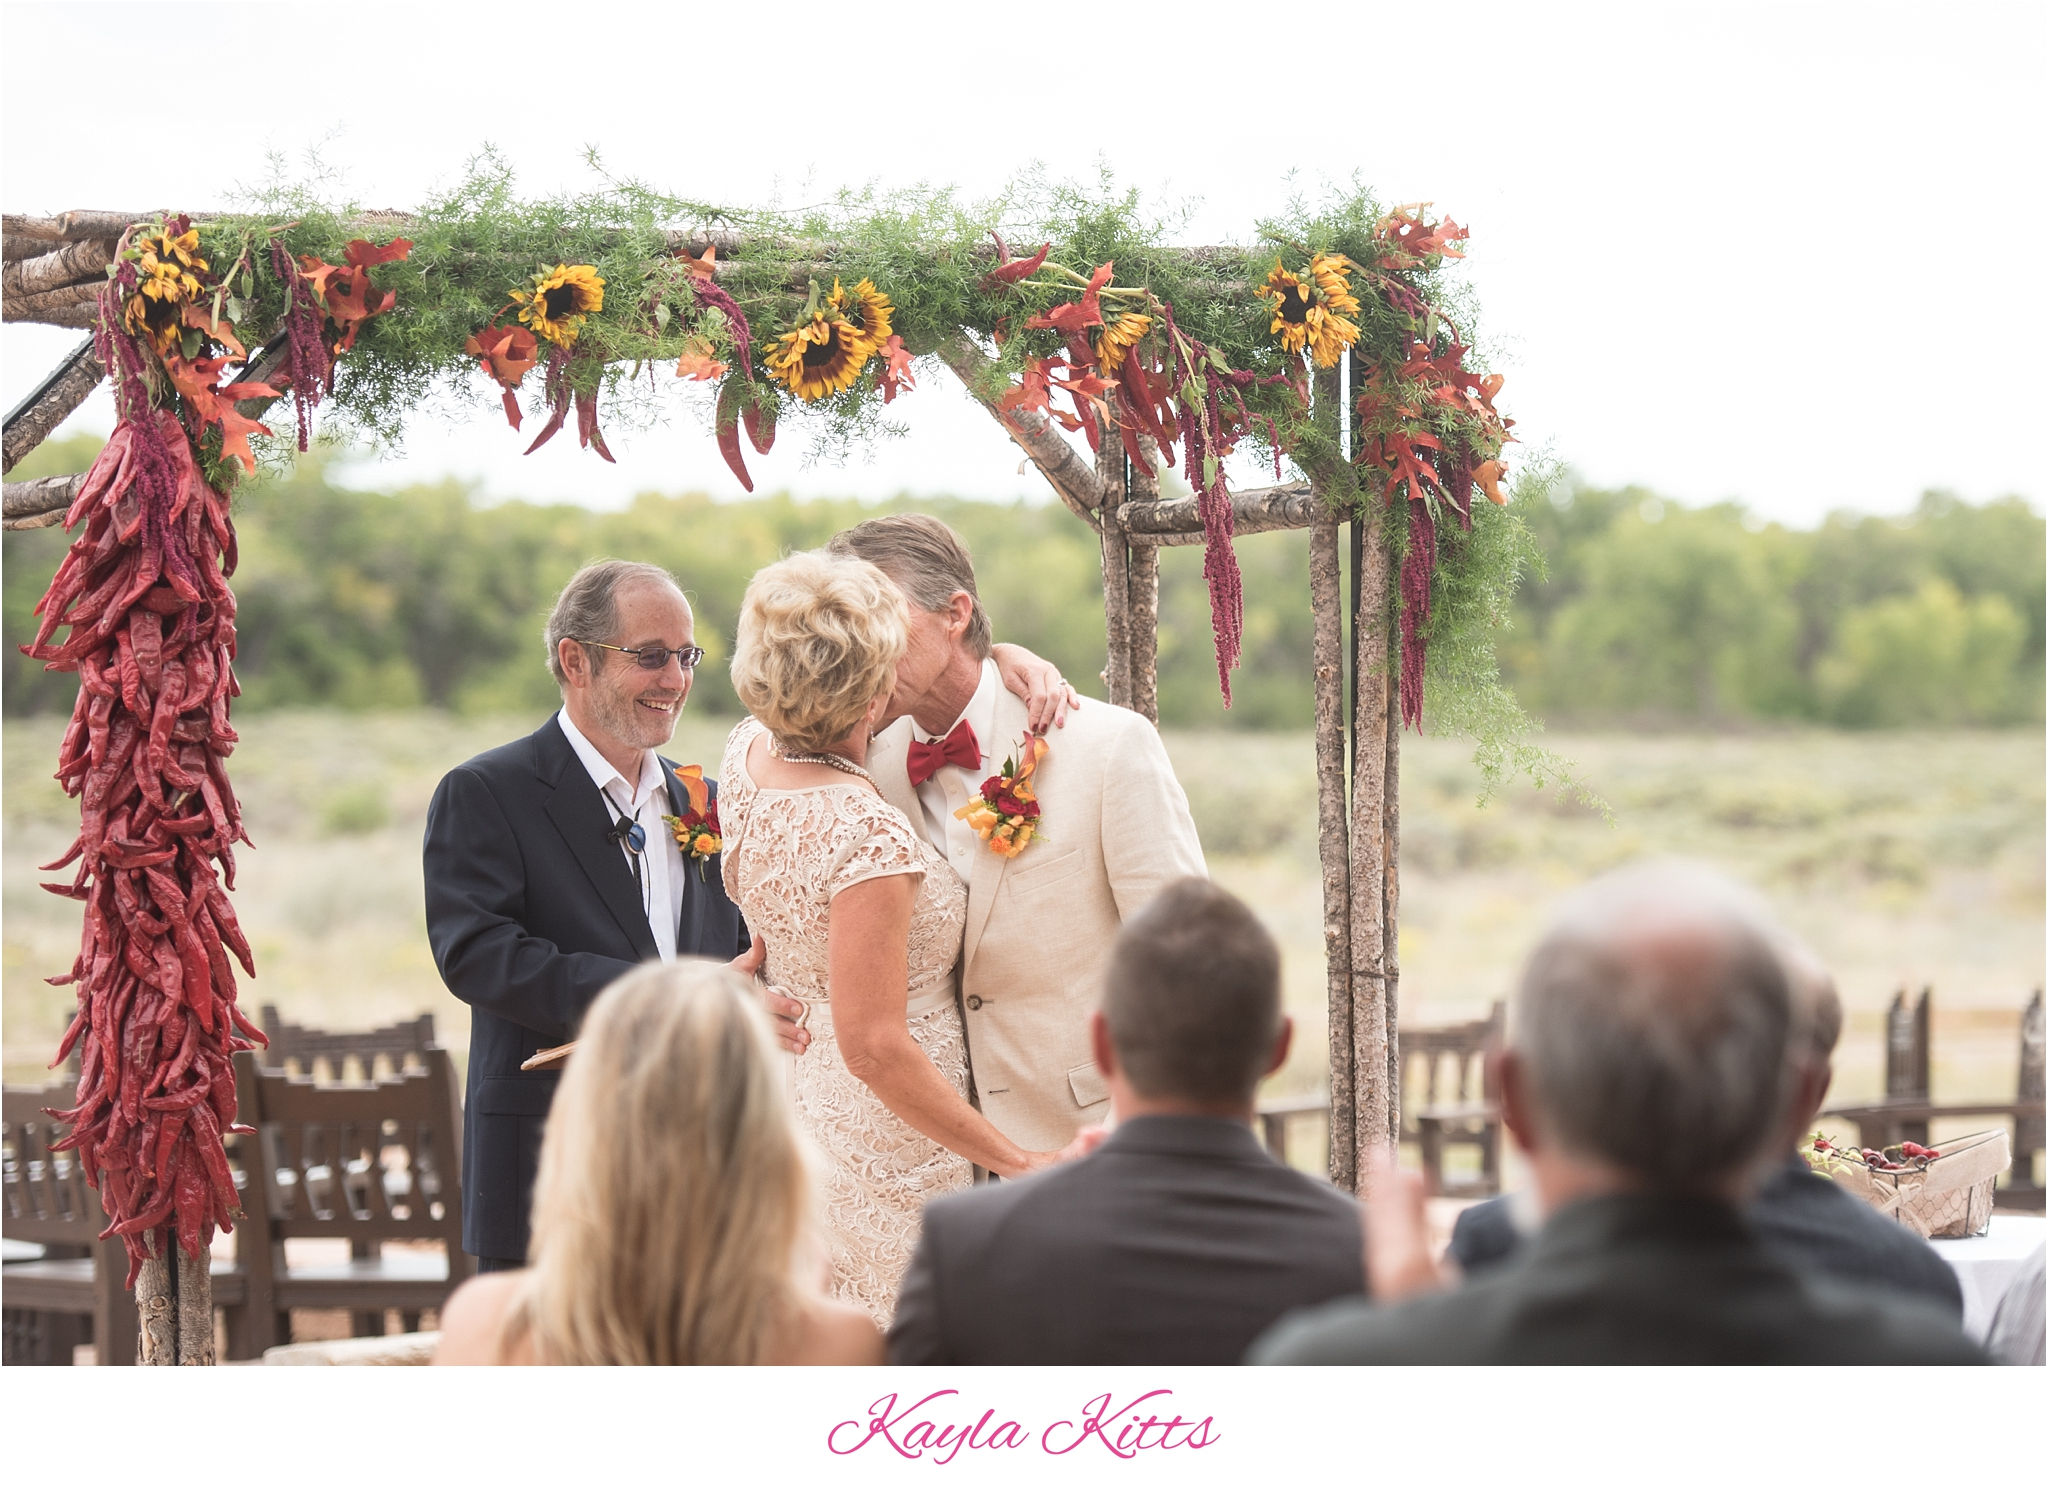 kayla kitts photography - albuquerque wedding photographer - albuquerque wedding photography - albuquerque venue - hyatt tamaya - hyatt tamaya wedding - new mexico wedding photographer_0048.jpg